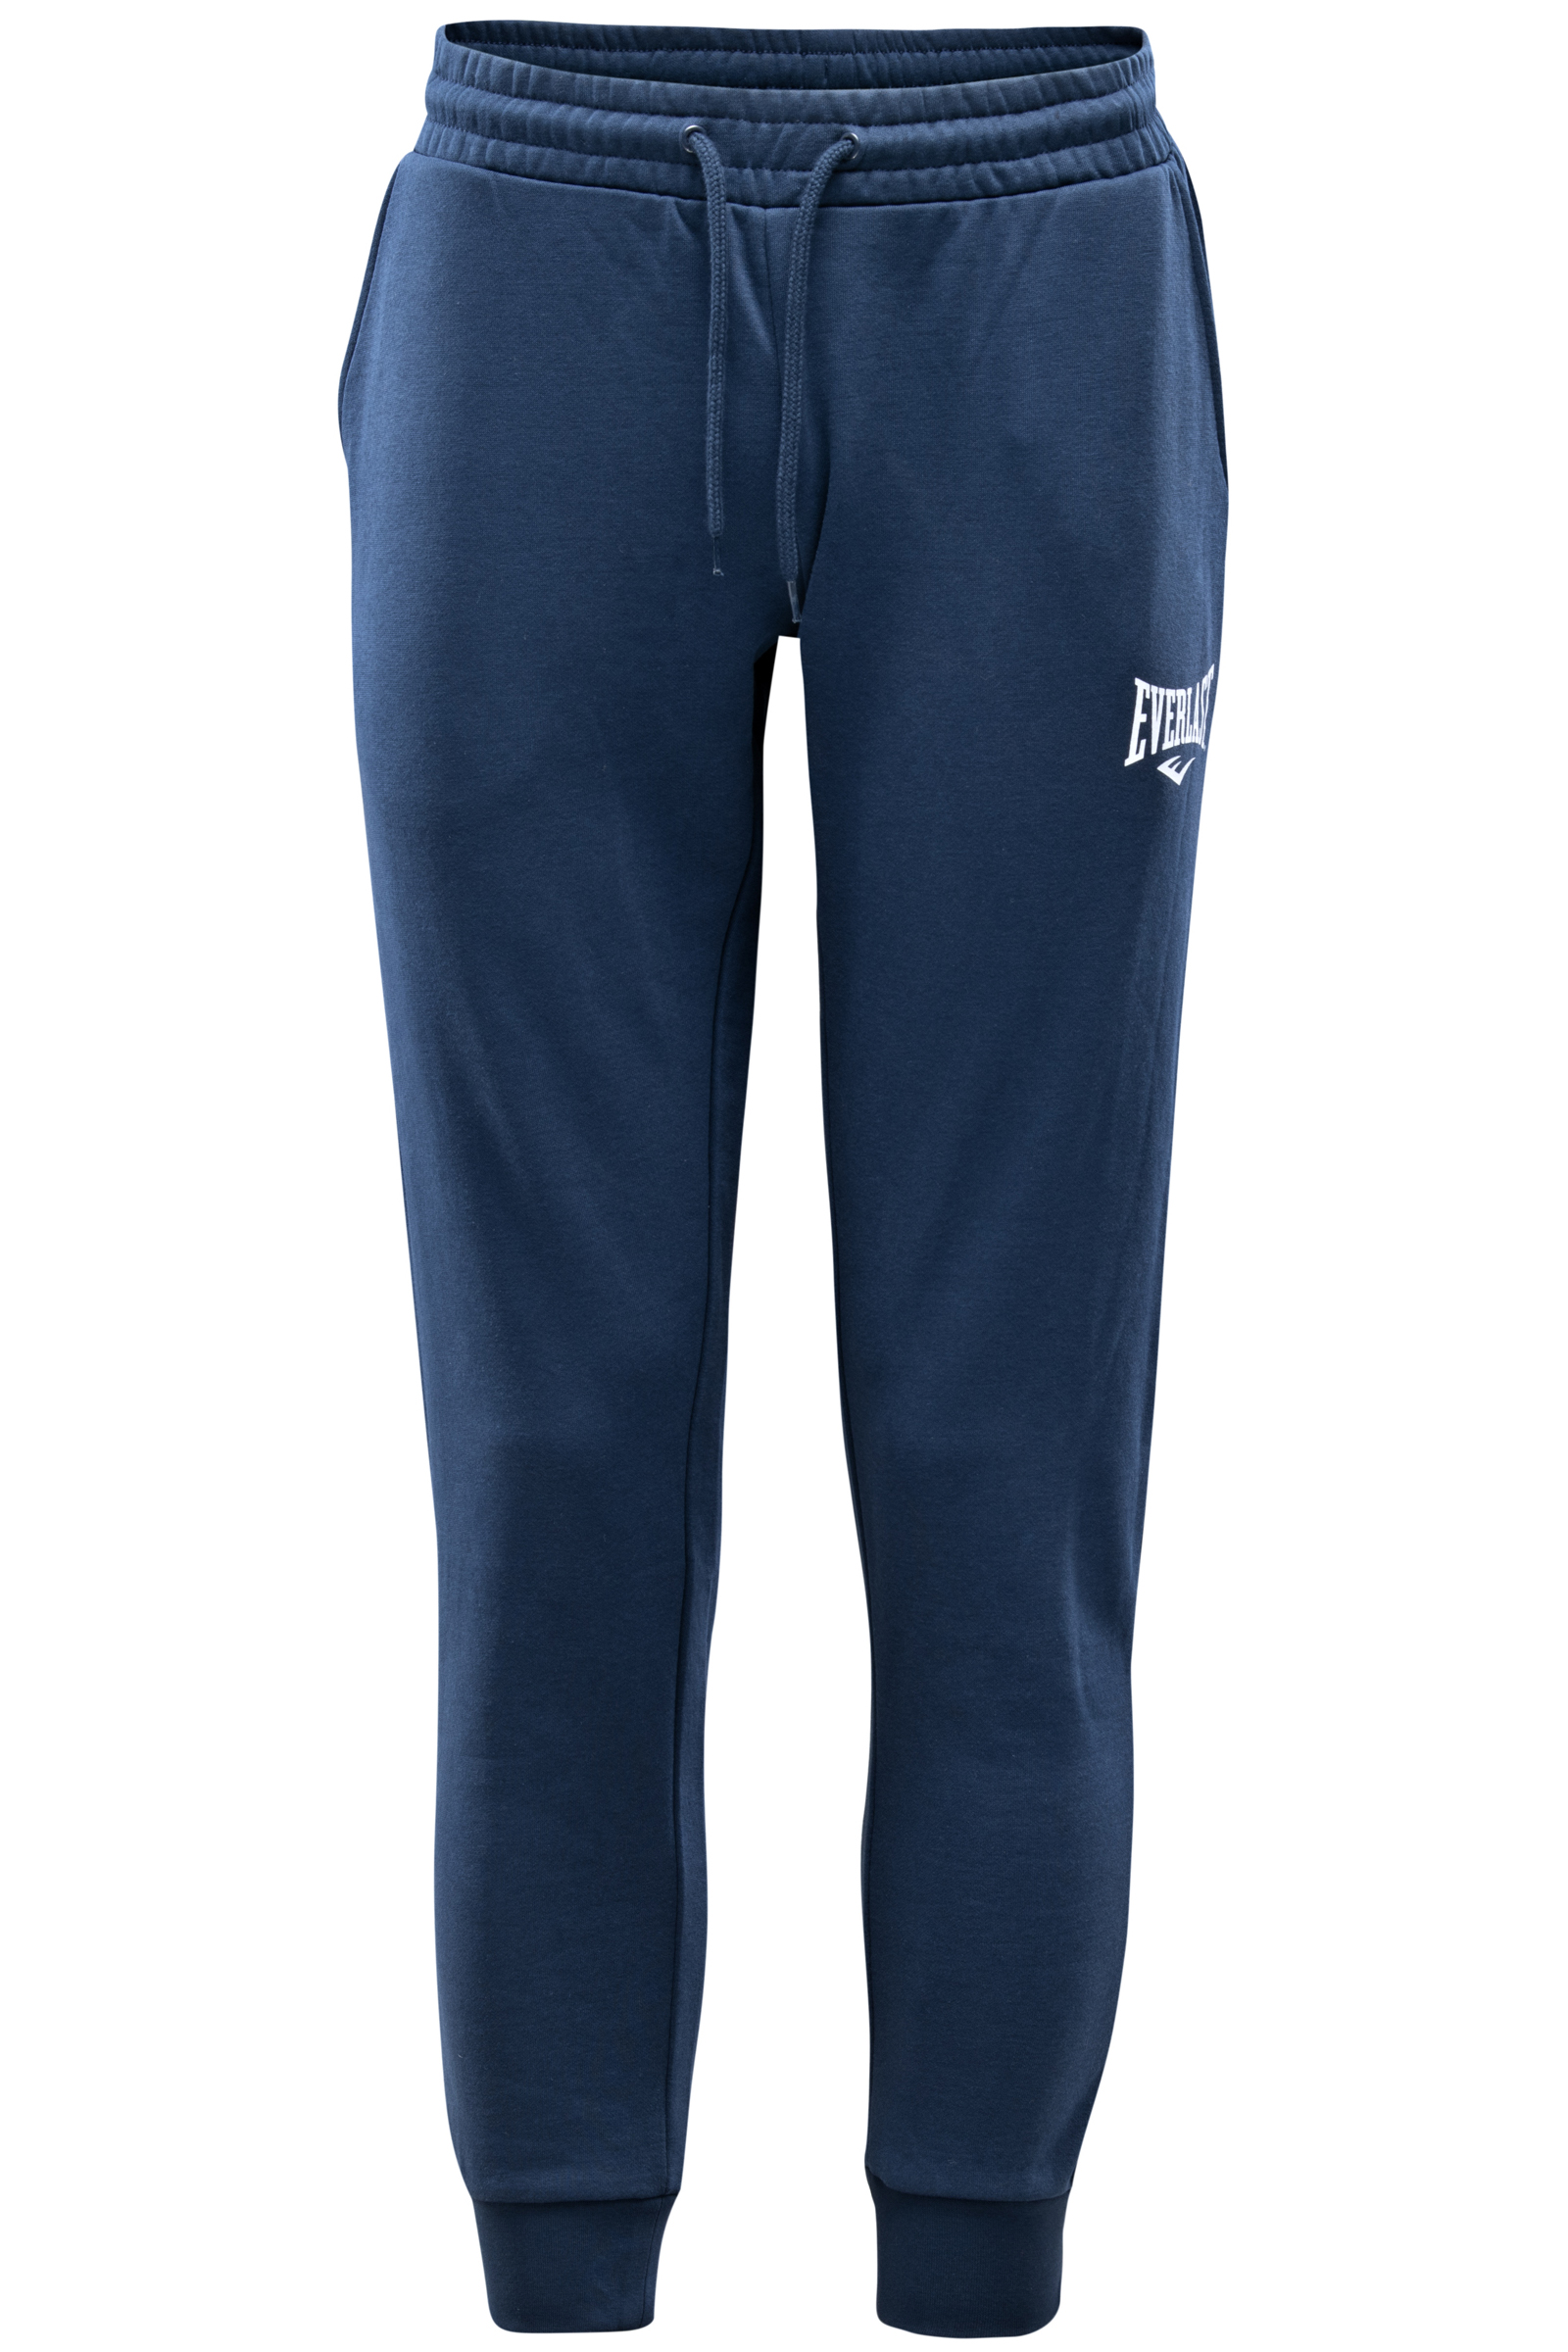 Jogging Everlast Audubon Navy